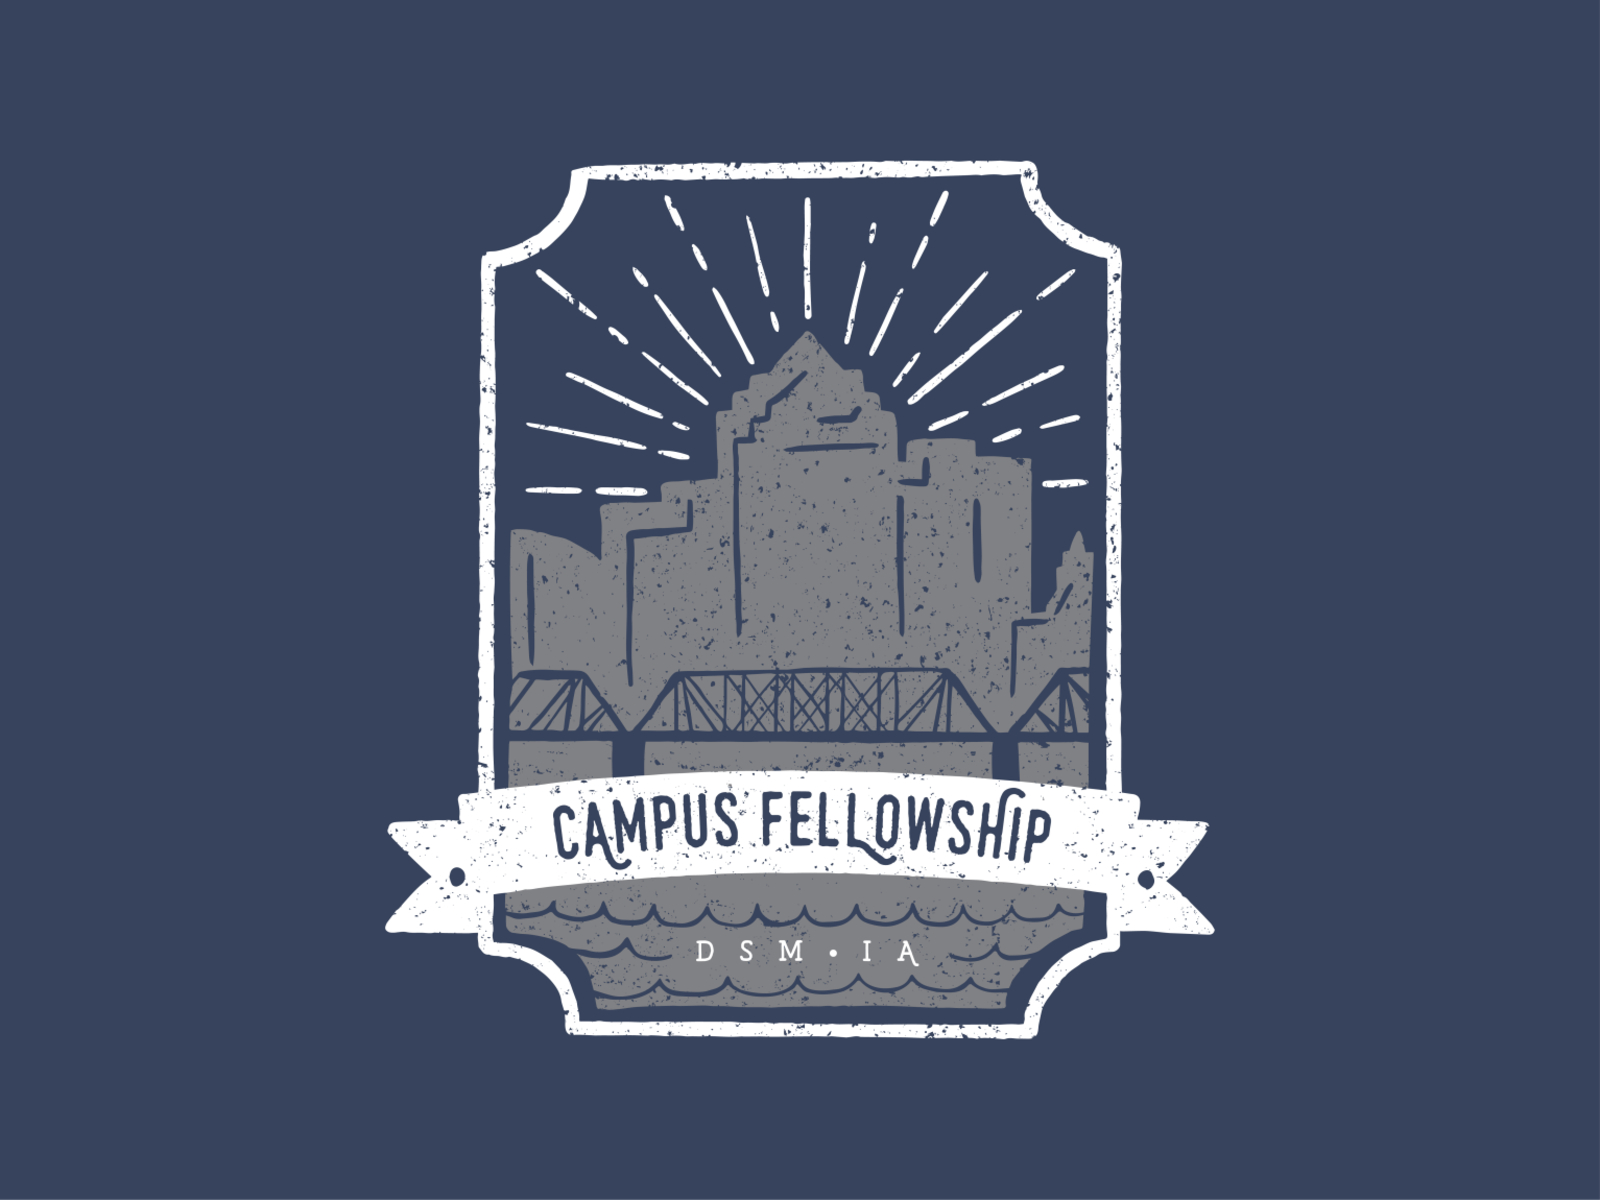 Campus Fellowship Des Moines T Shirt By Kylee Bateman On Dribbble